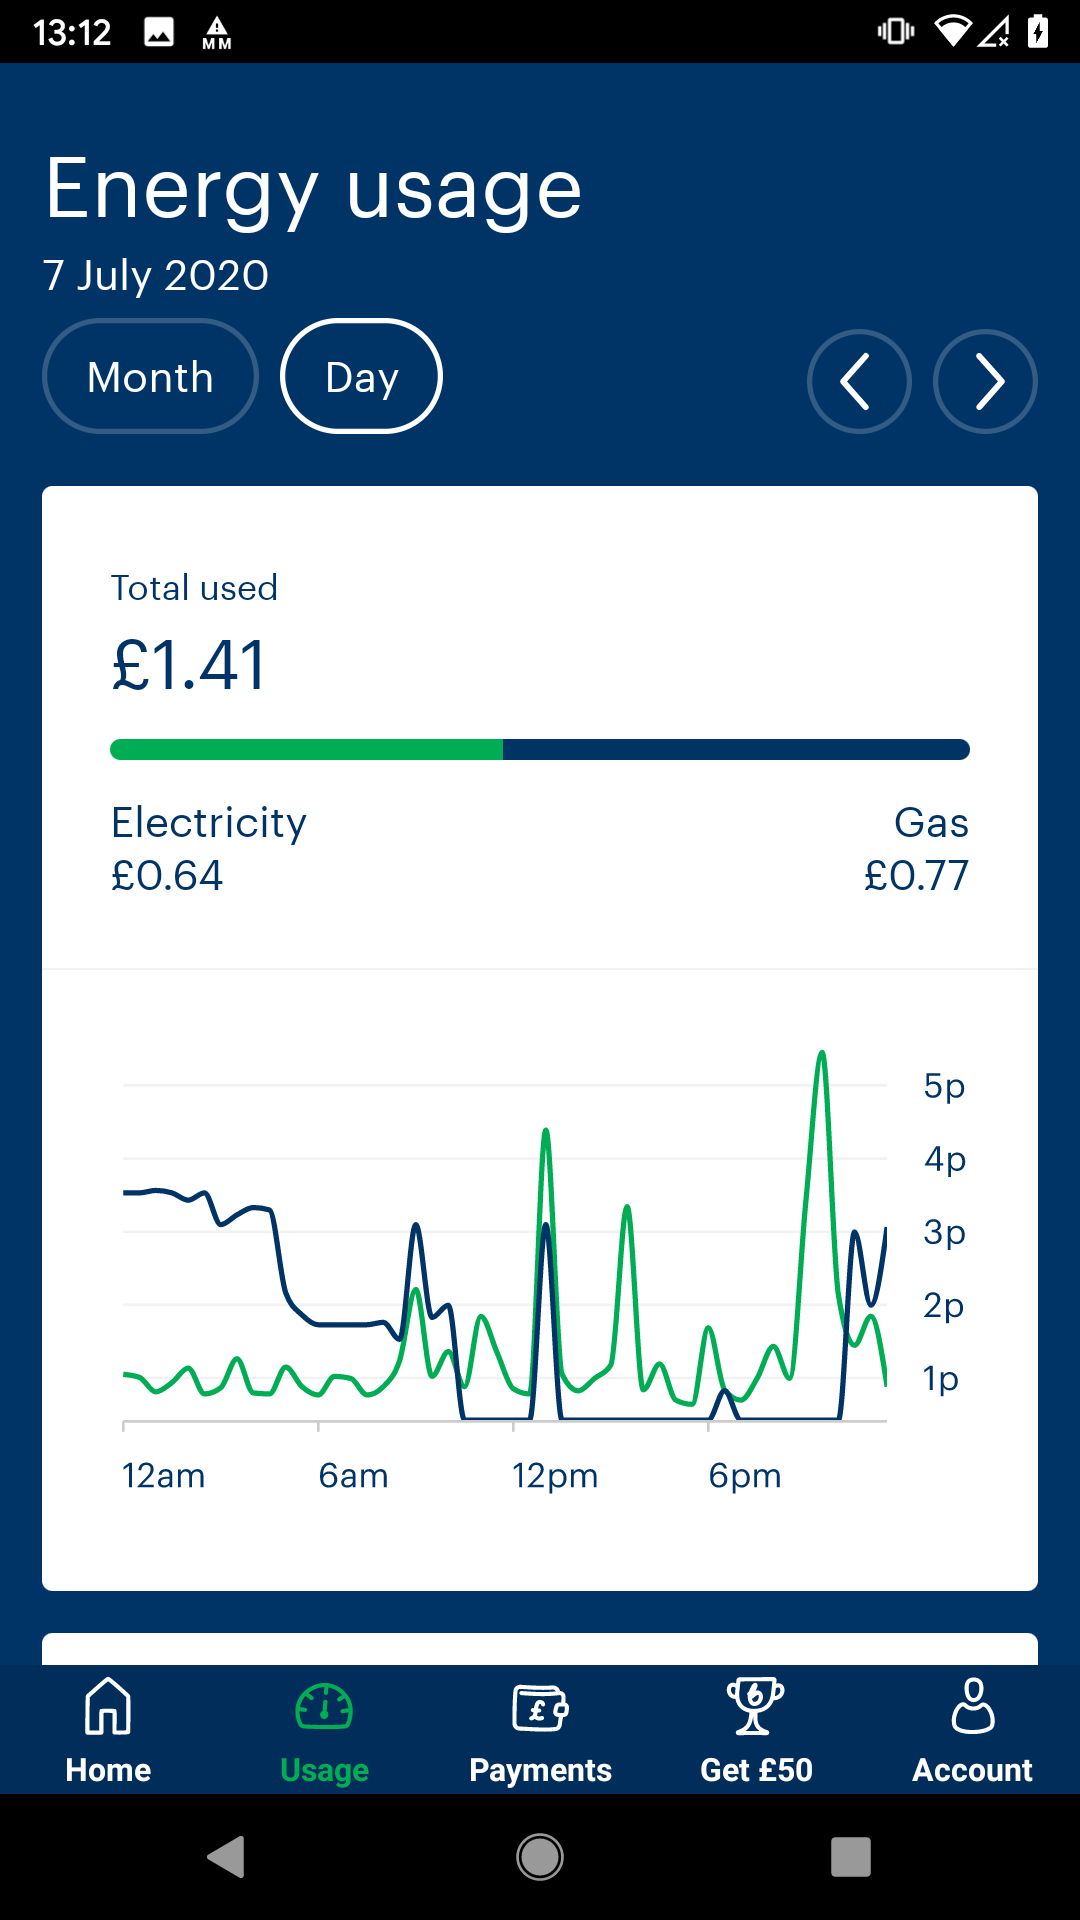 A line graph showing patterns of gas and electricity usage across a single day, including costs. Total used £1.41.